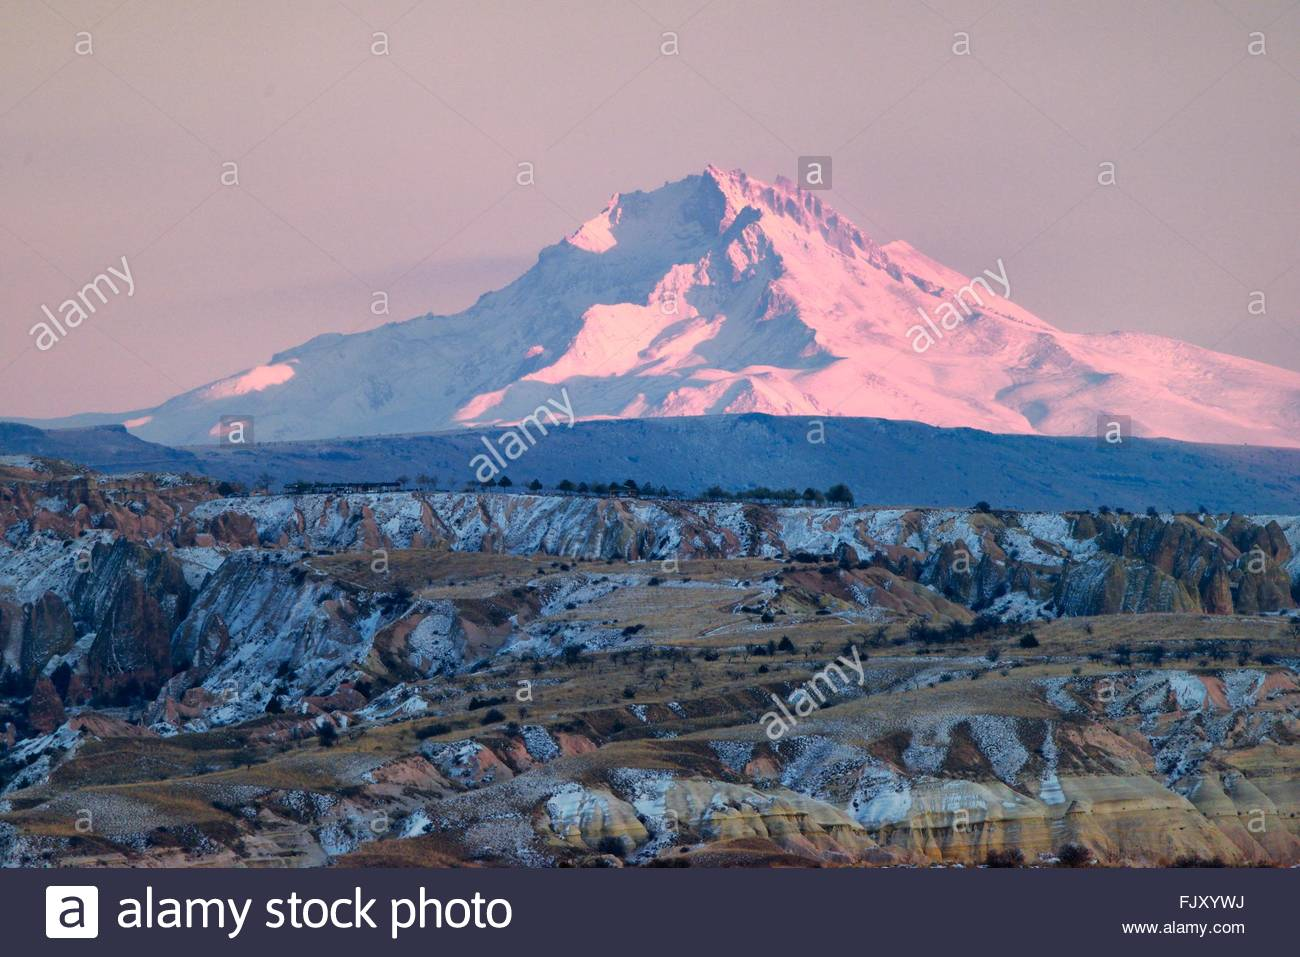 Snow Covered Volcanic 3916m Peak Of Mount Erciyes, Highest.